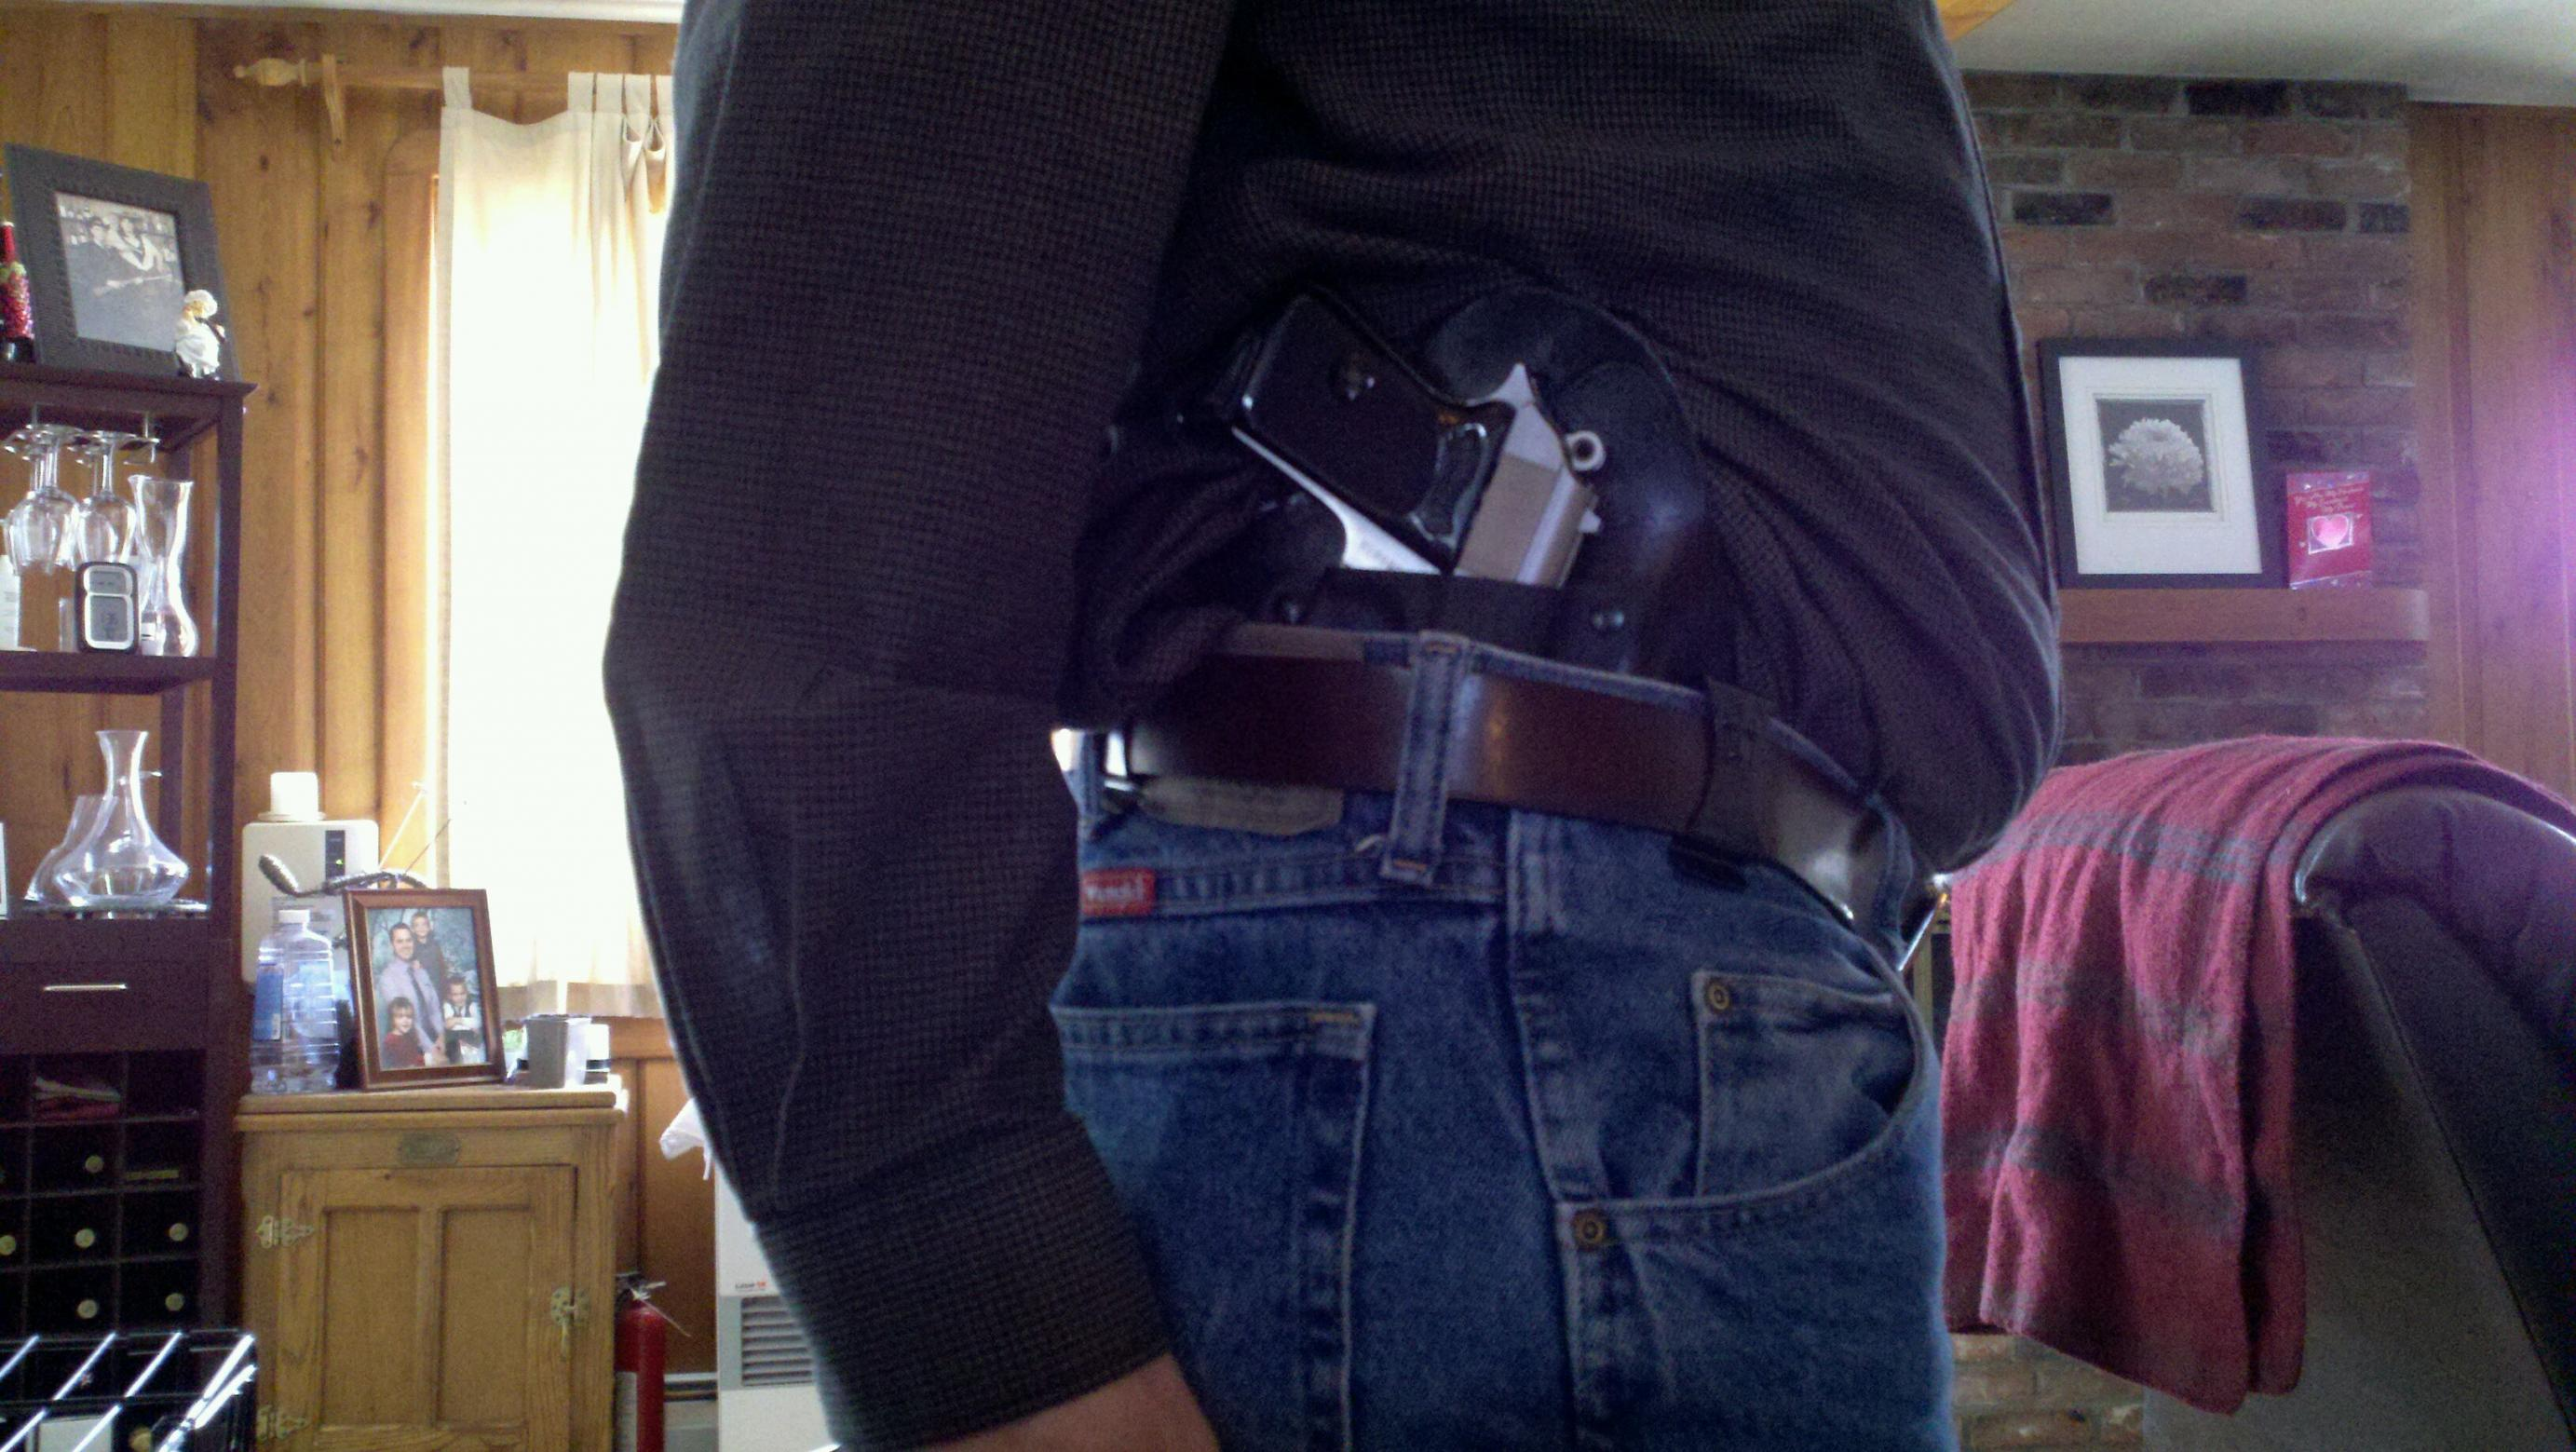 Let's See Your Pic's - How You Carry Concealed.-imagesequence00000007.jpg